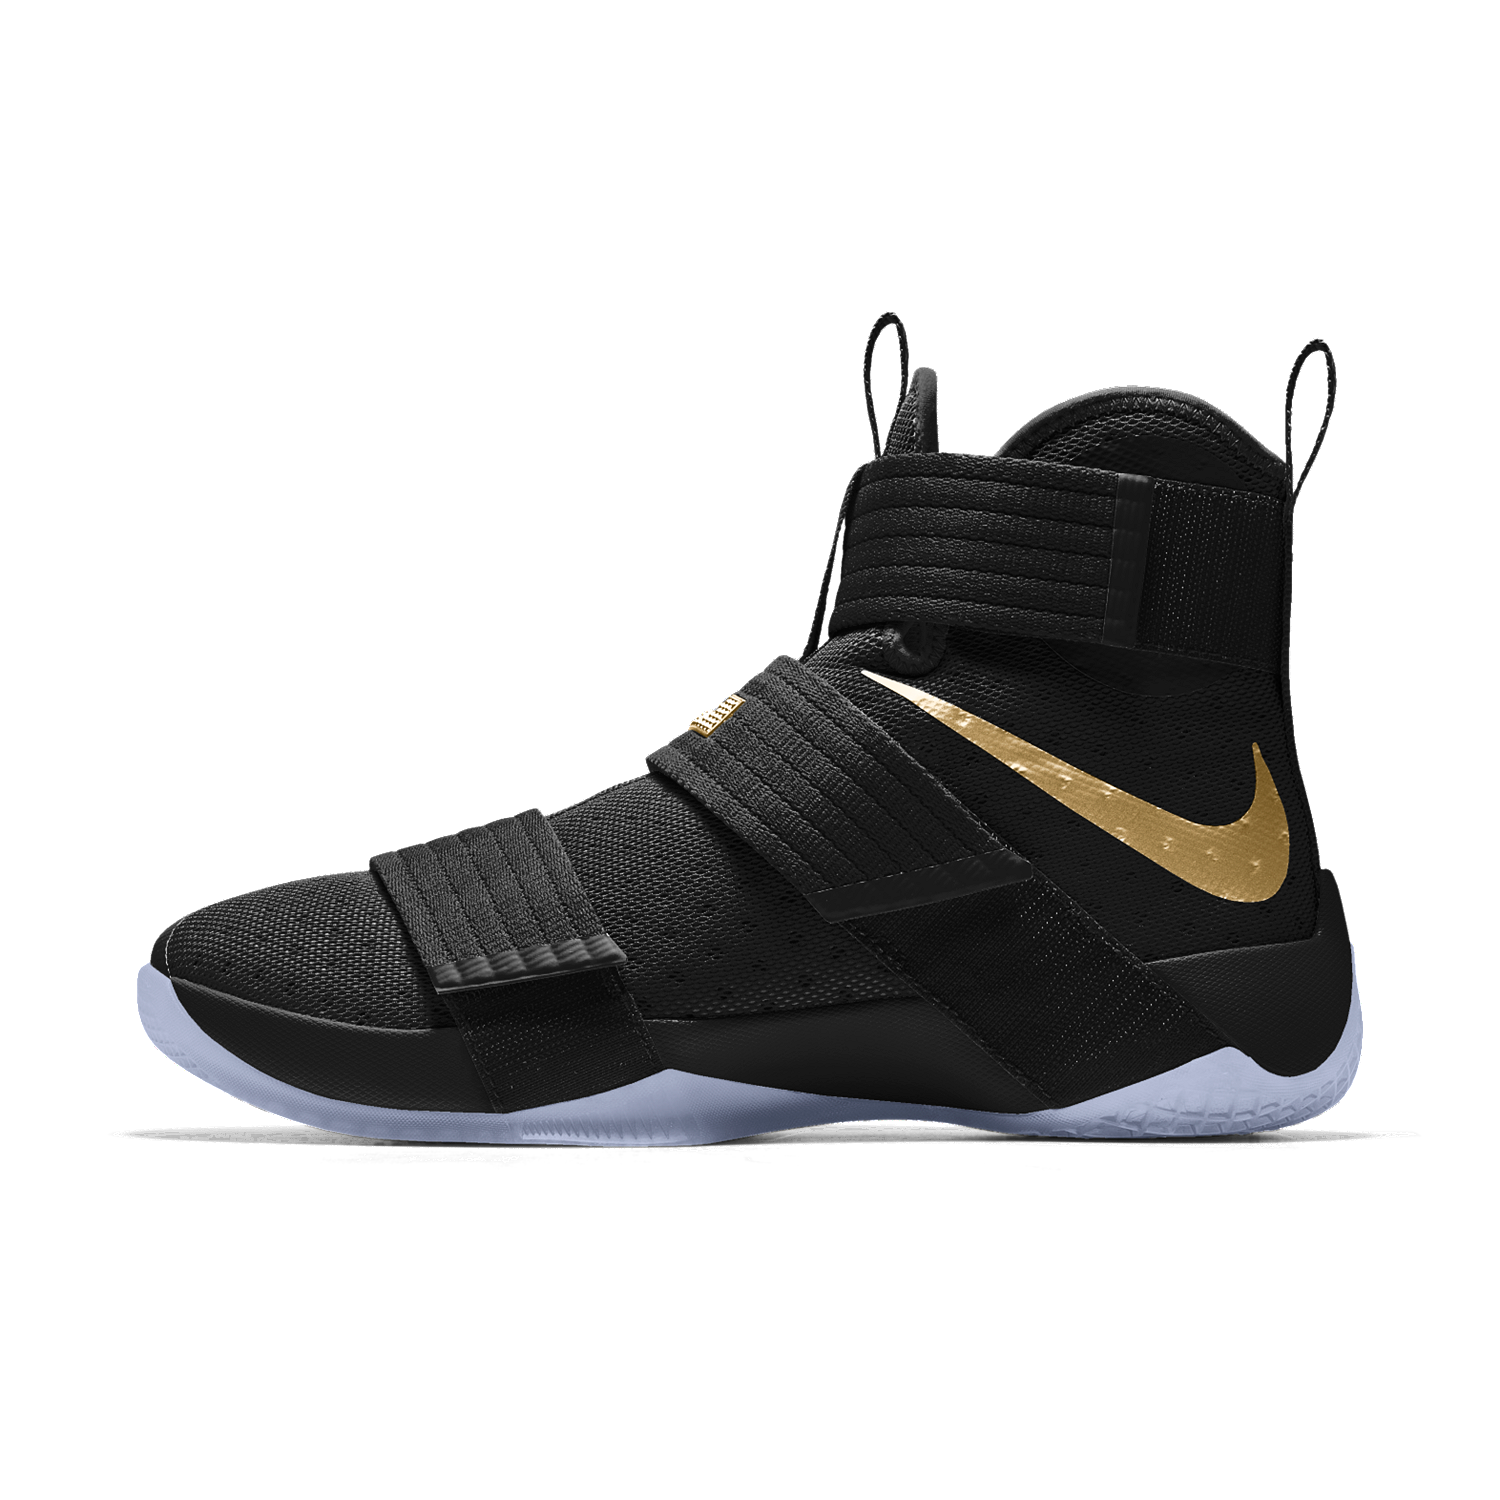 Nike Zoom LeBron Soldier 10 iD